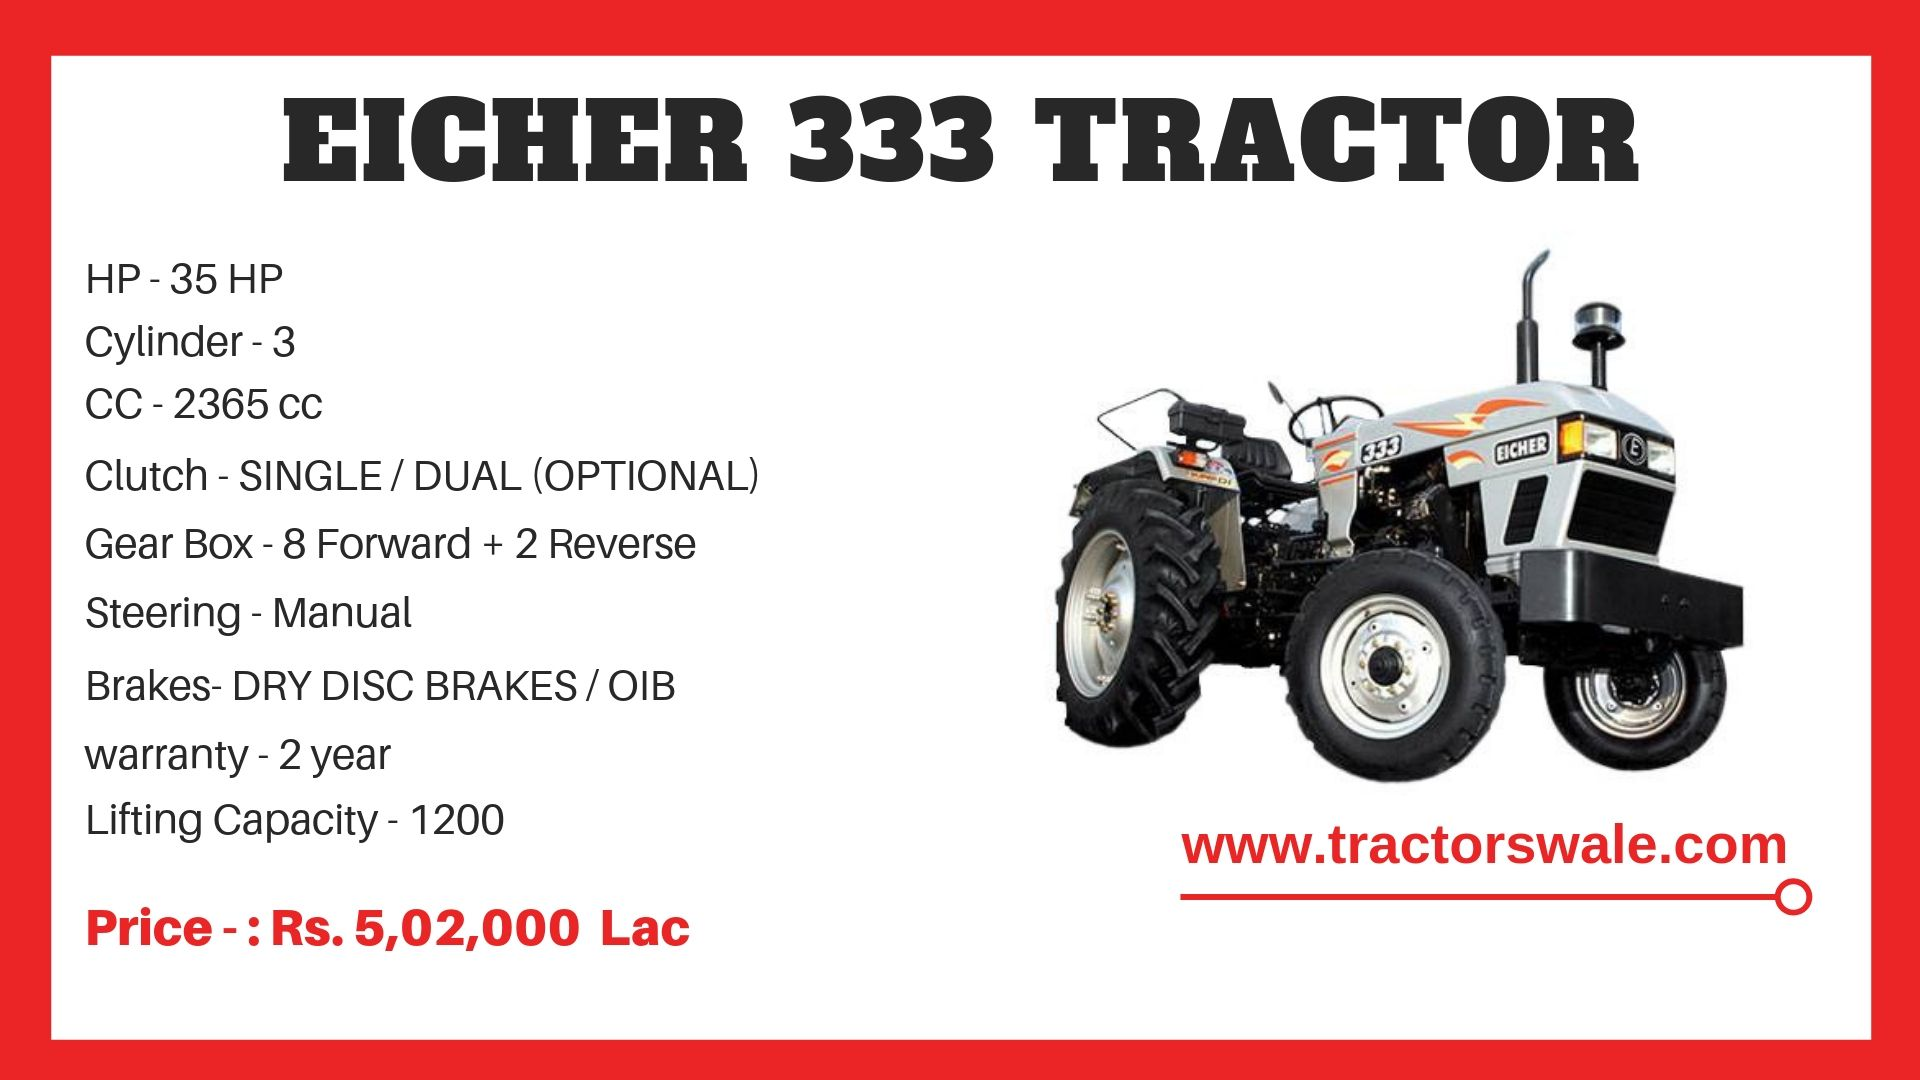 Eicher Tractor 333 Specifications